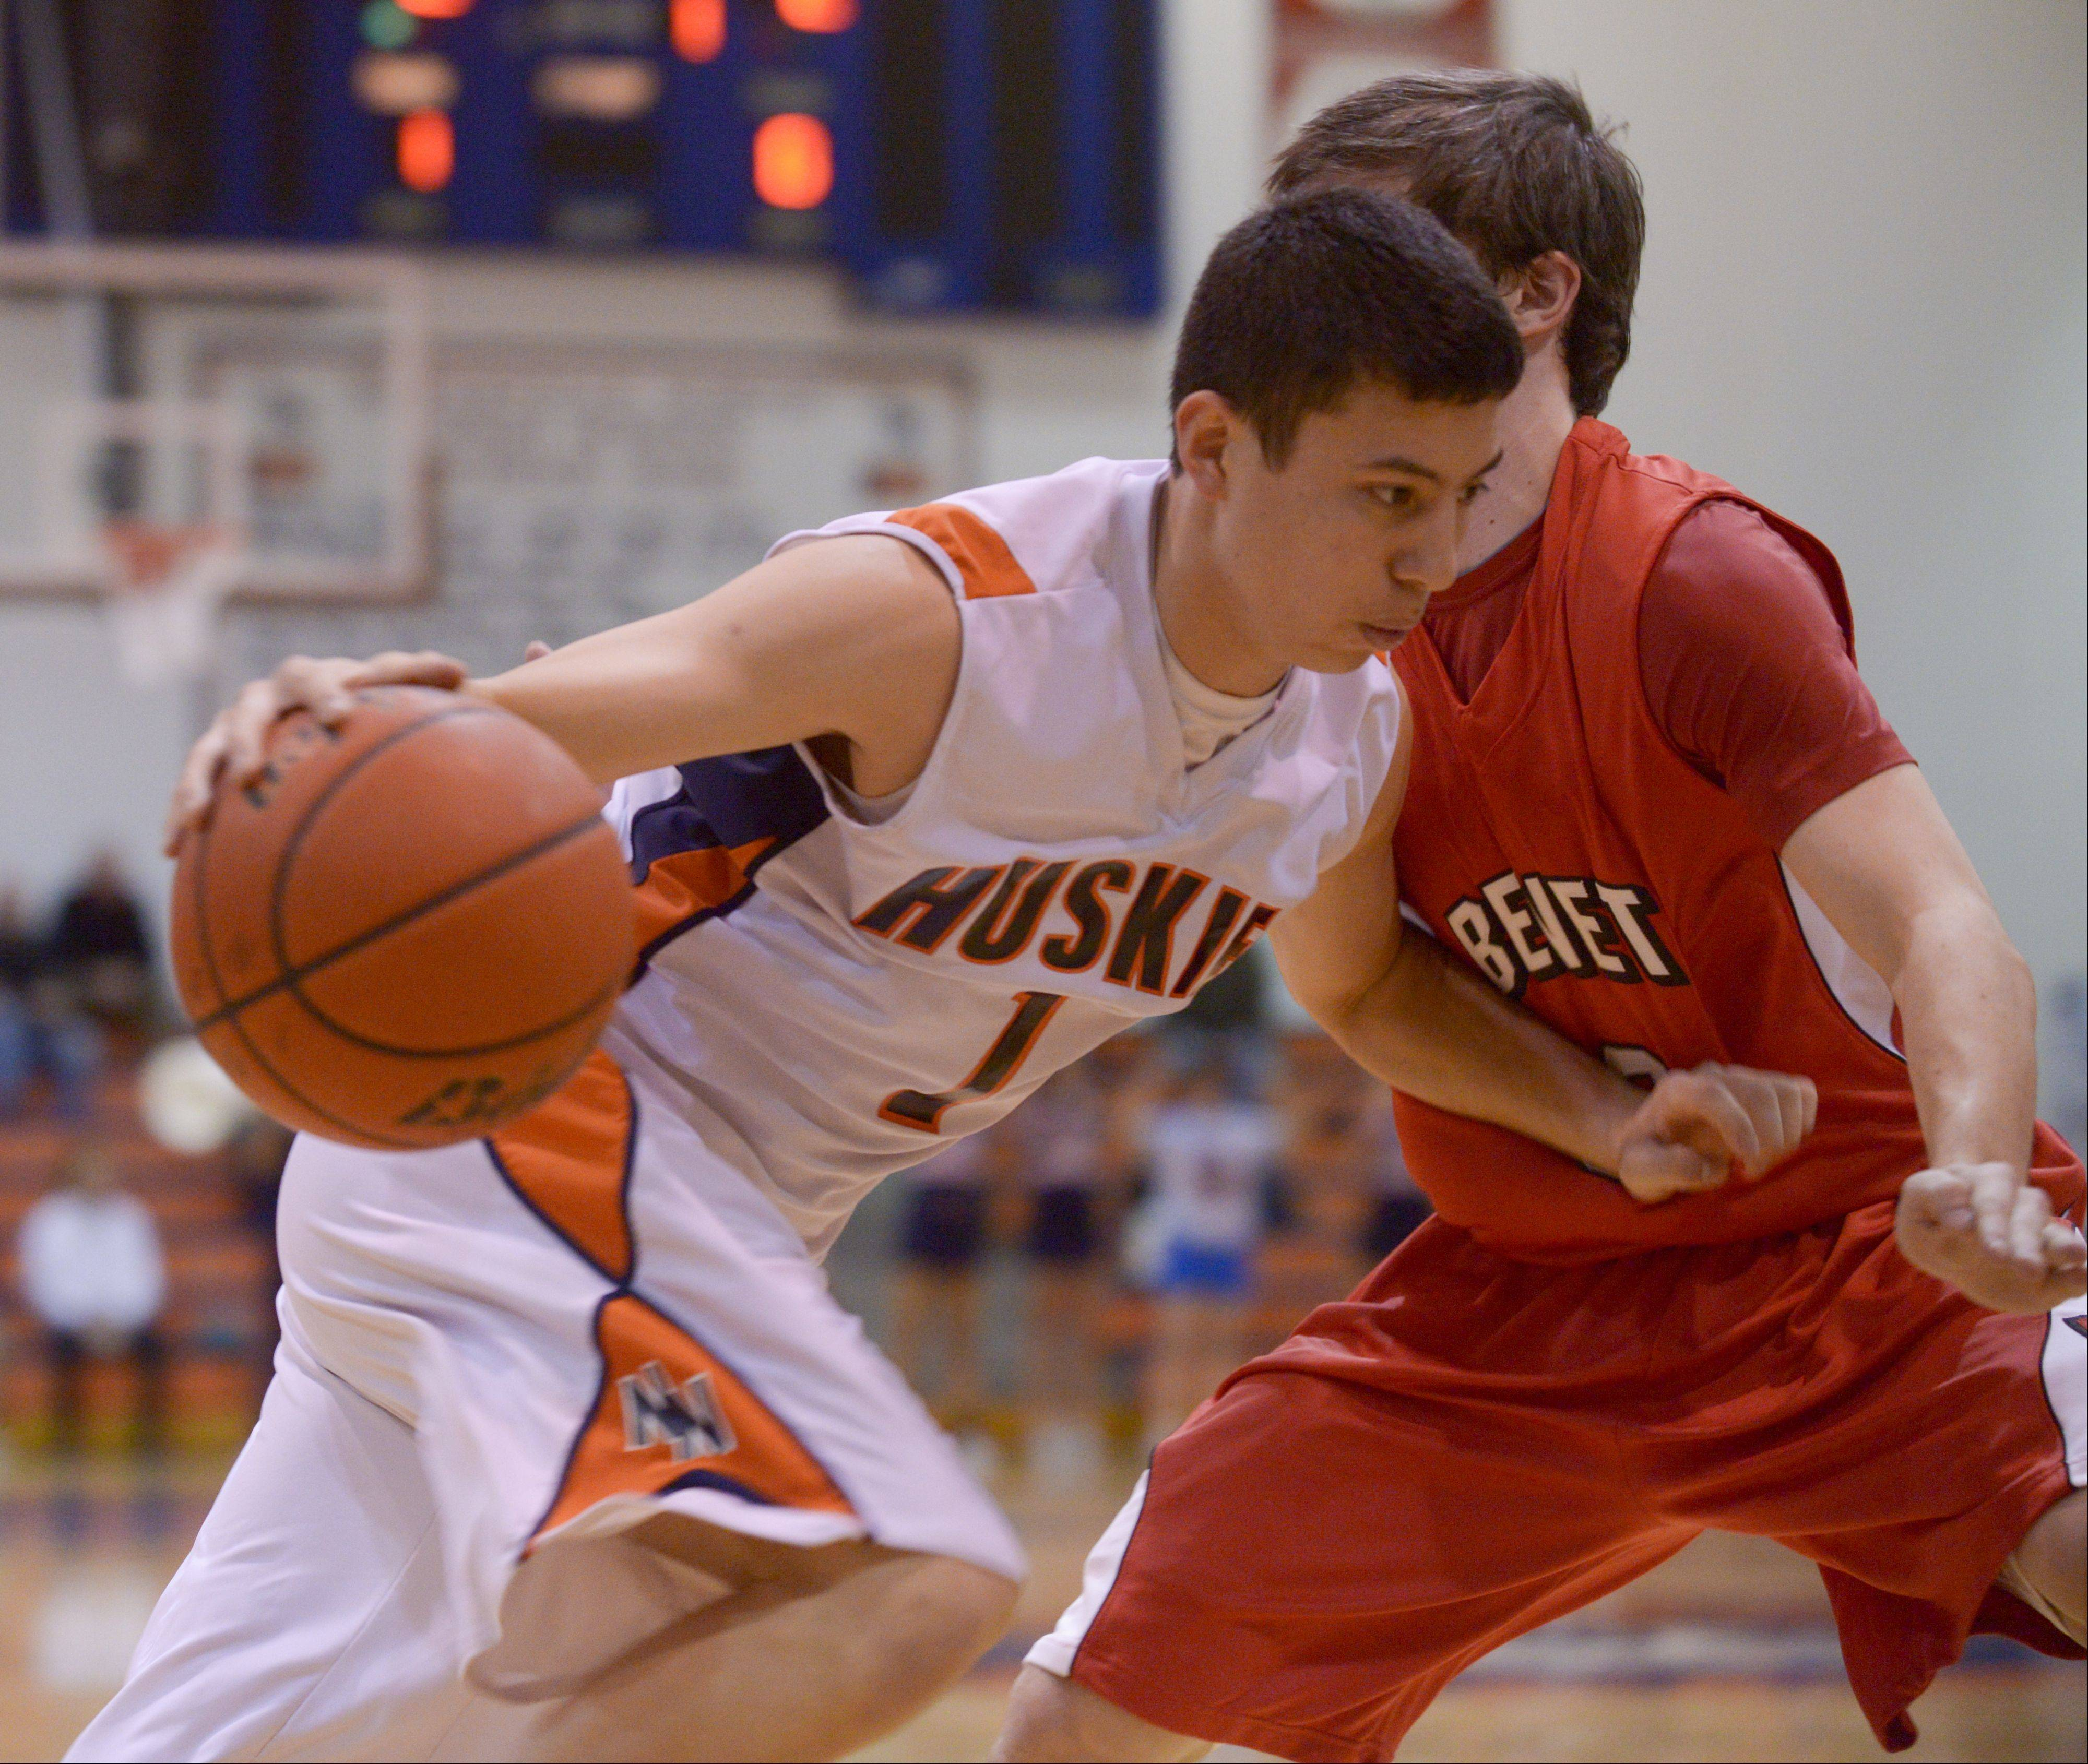 Naperville North�s Jayson Winick drives around Benet�s Collin Pellettieri during in boys basketball in Naperville Sunday.